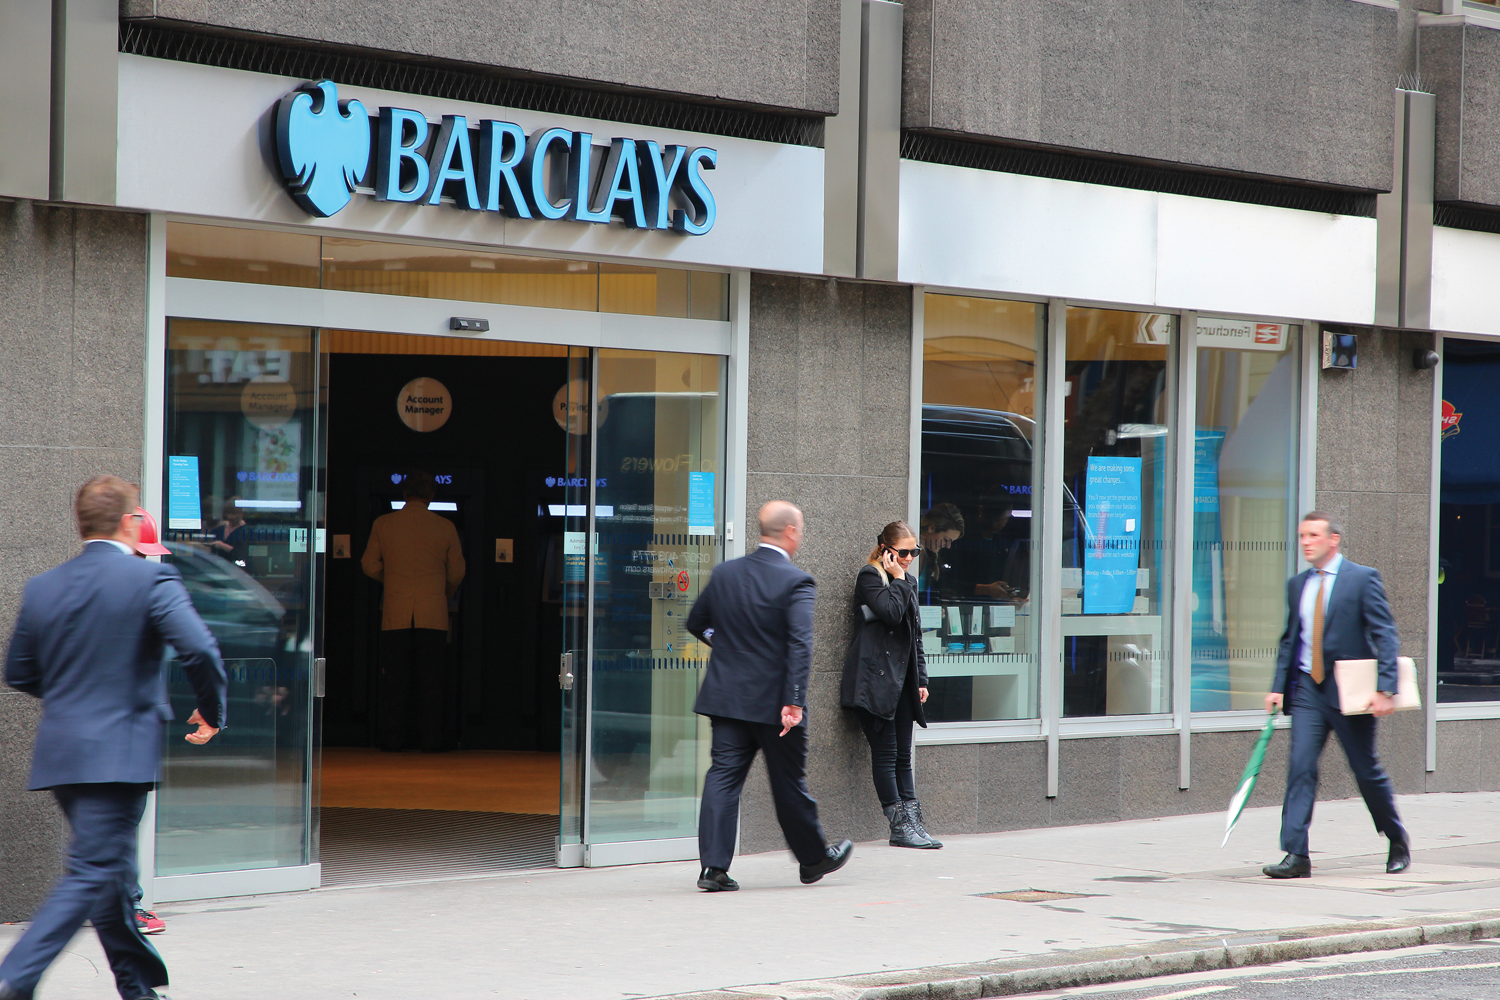 Barclays Launches £100m Fund For Fast Growing Tech Companies